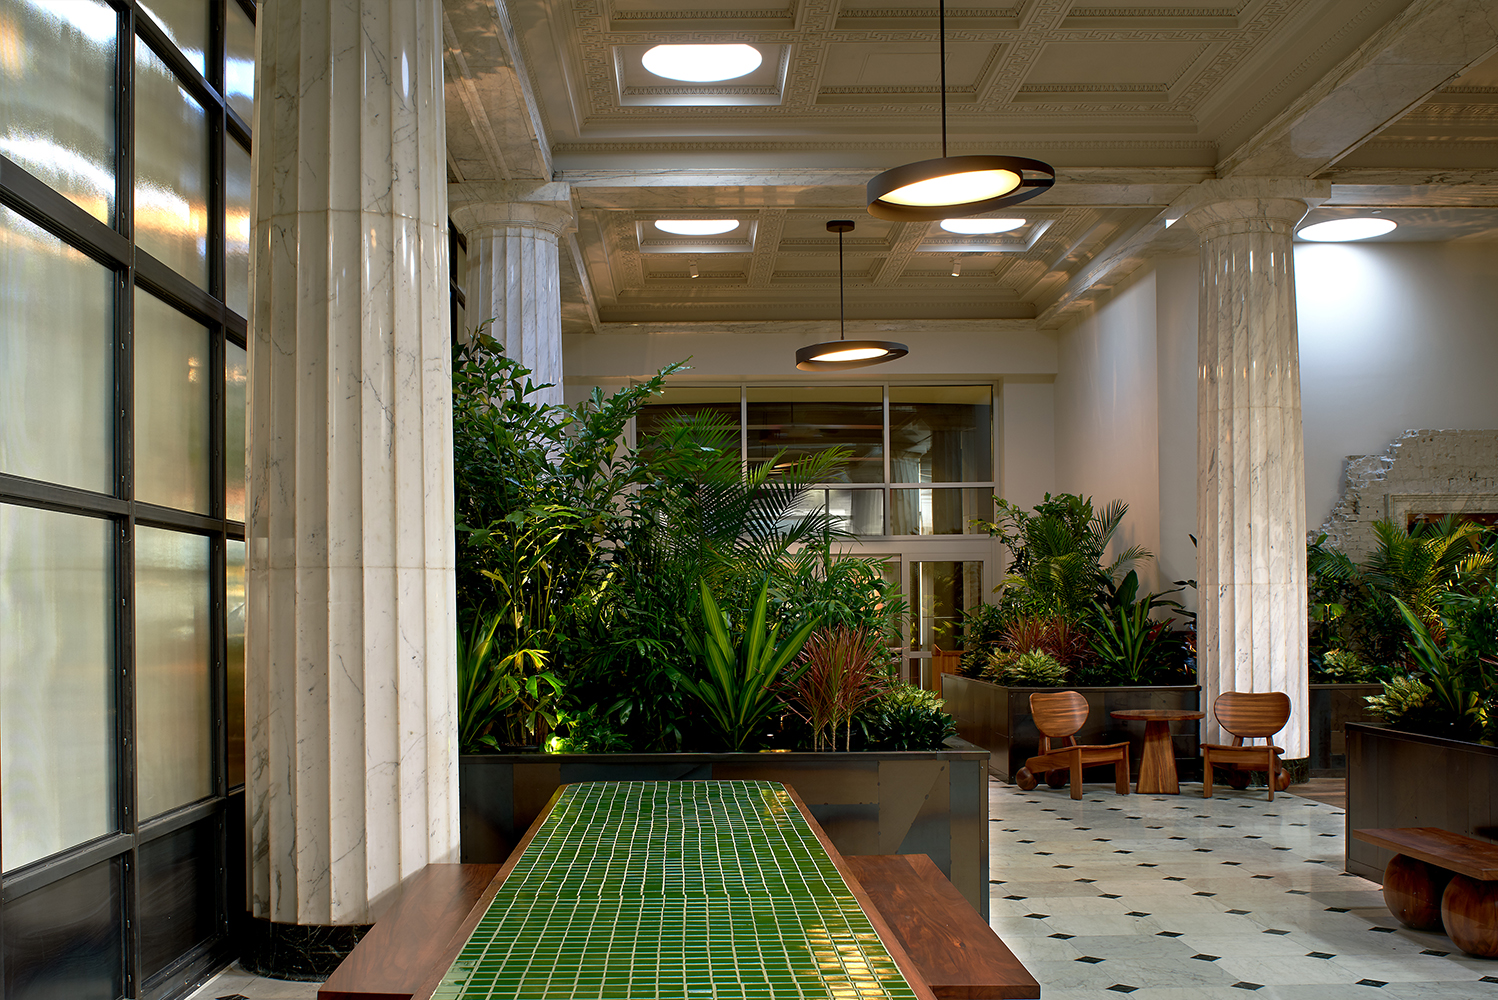 The lobby of the property is reminiscent of an indoor/outdoor garden with greenery.